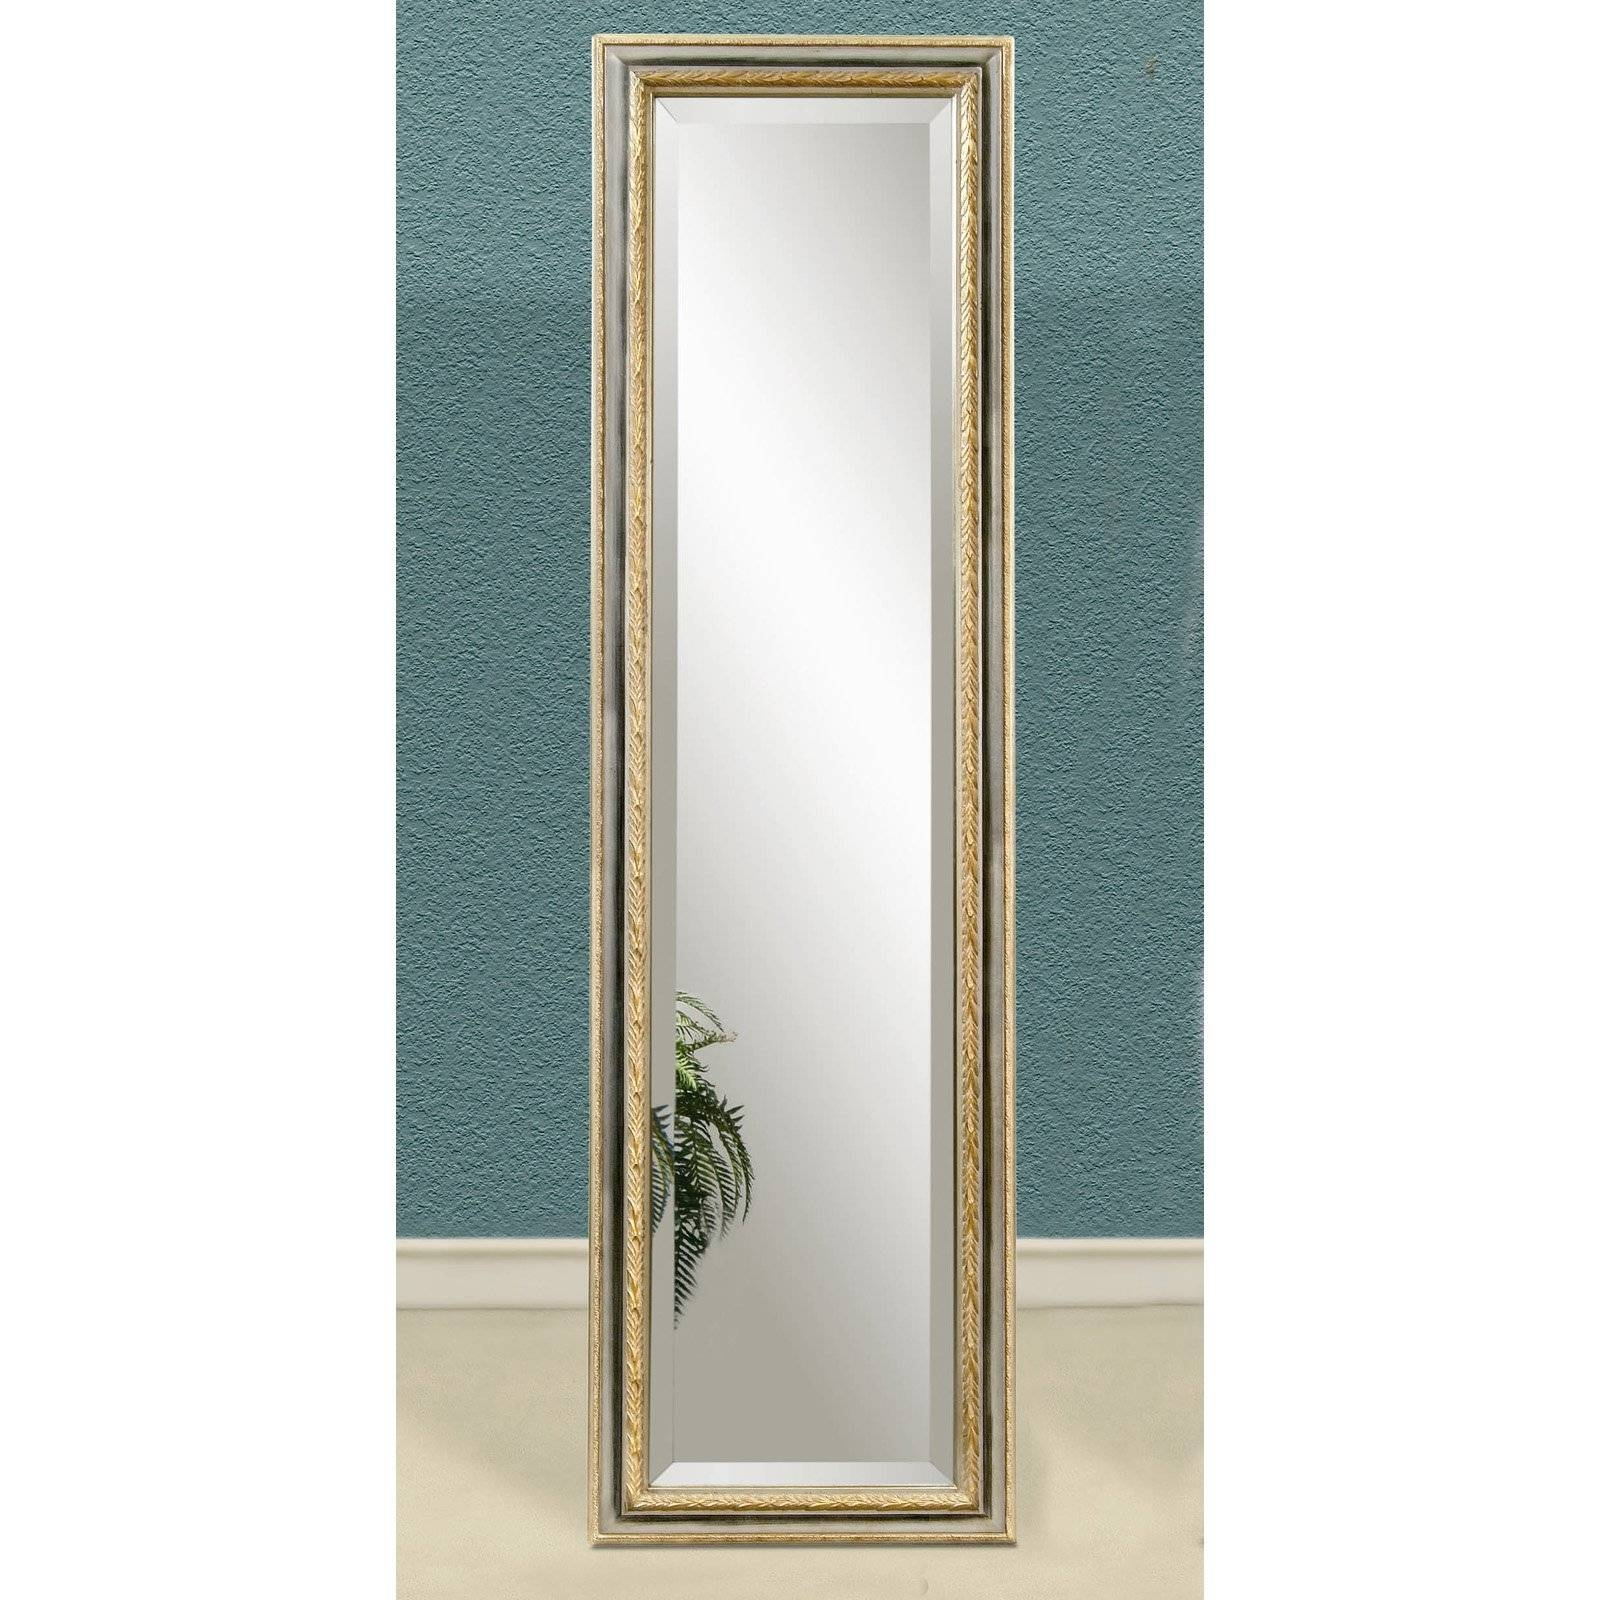 Silver & Gold Full Length Cheval Floor Mirror - 18W X 64H In inside Silver Full Length Mirrors (Image 12 of 15)